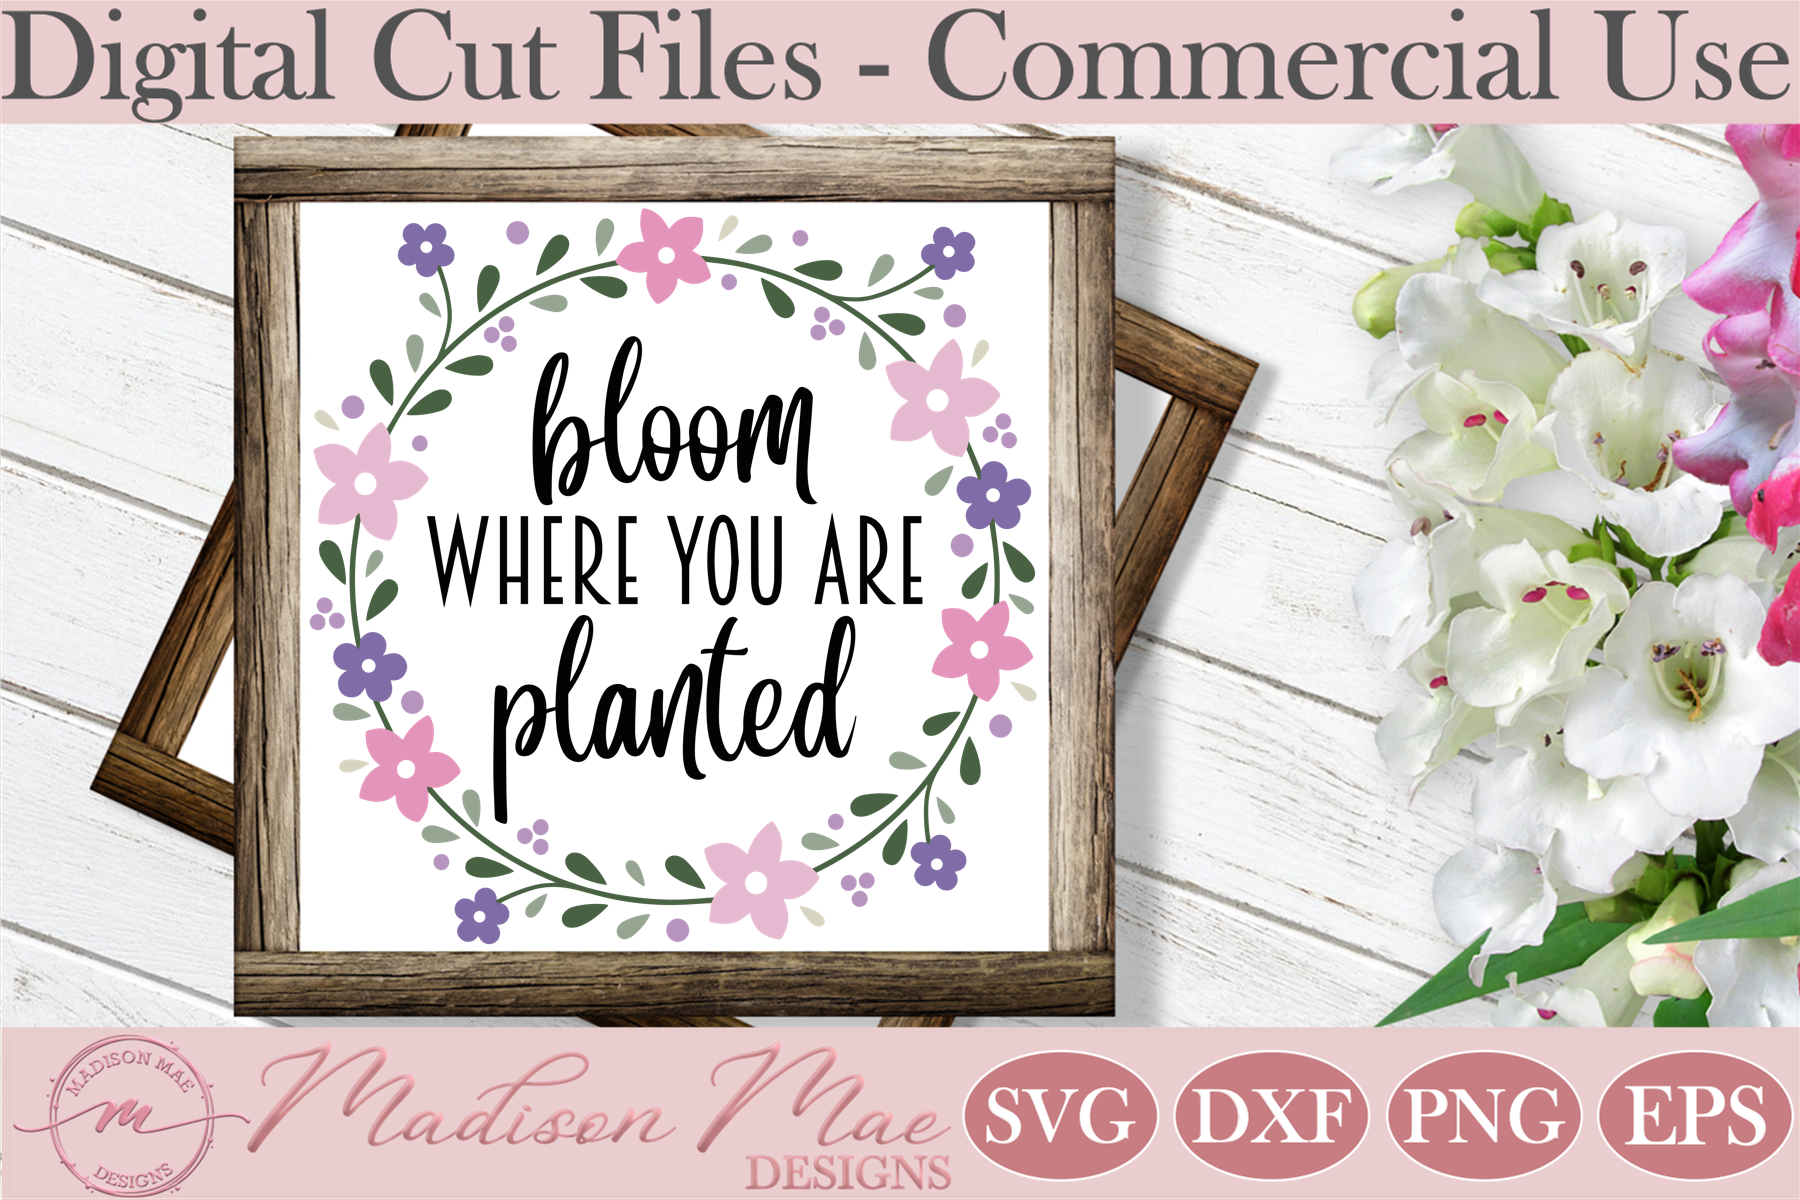 Spring Bloom Where You Are Planted Graphic By Madison Mae